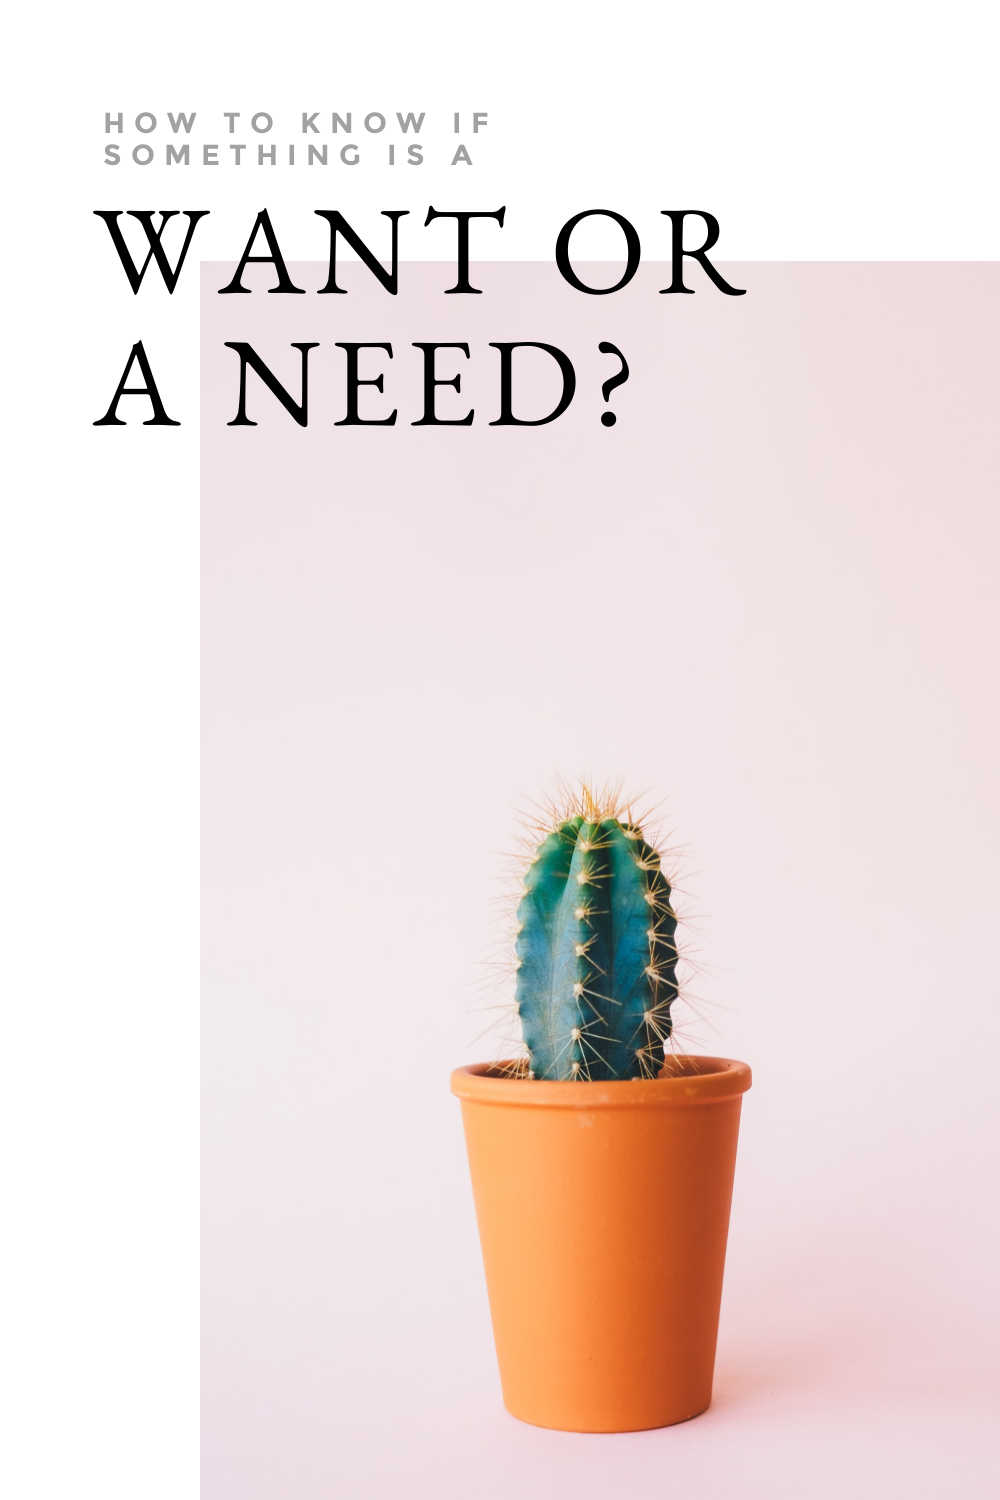 HOW TO KNOW IF SOMETHING IS A WANT OR A NEED